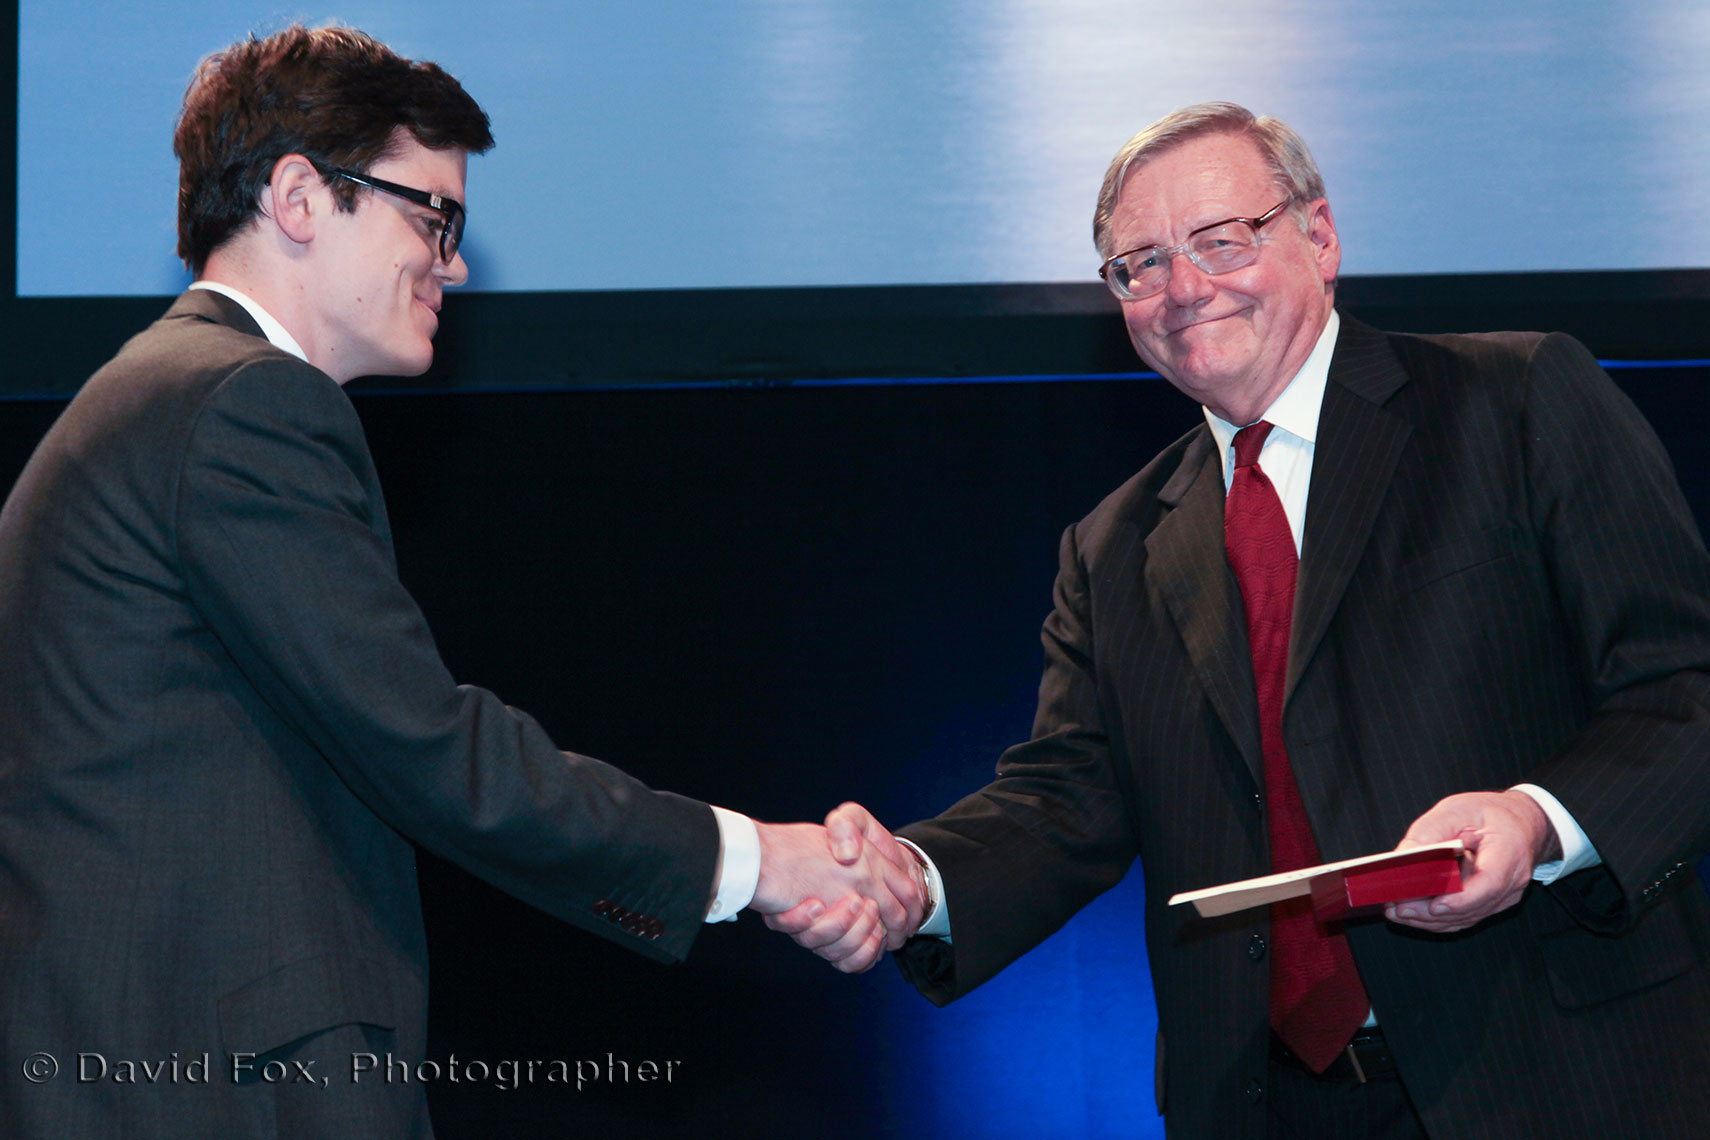 IFA Award Recipient Handshake by David Fox Photographer